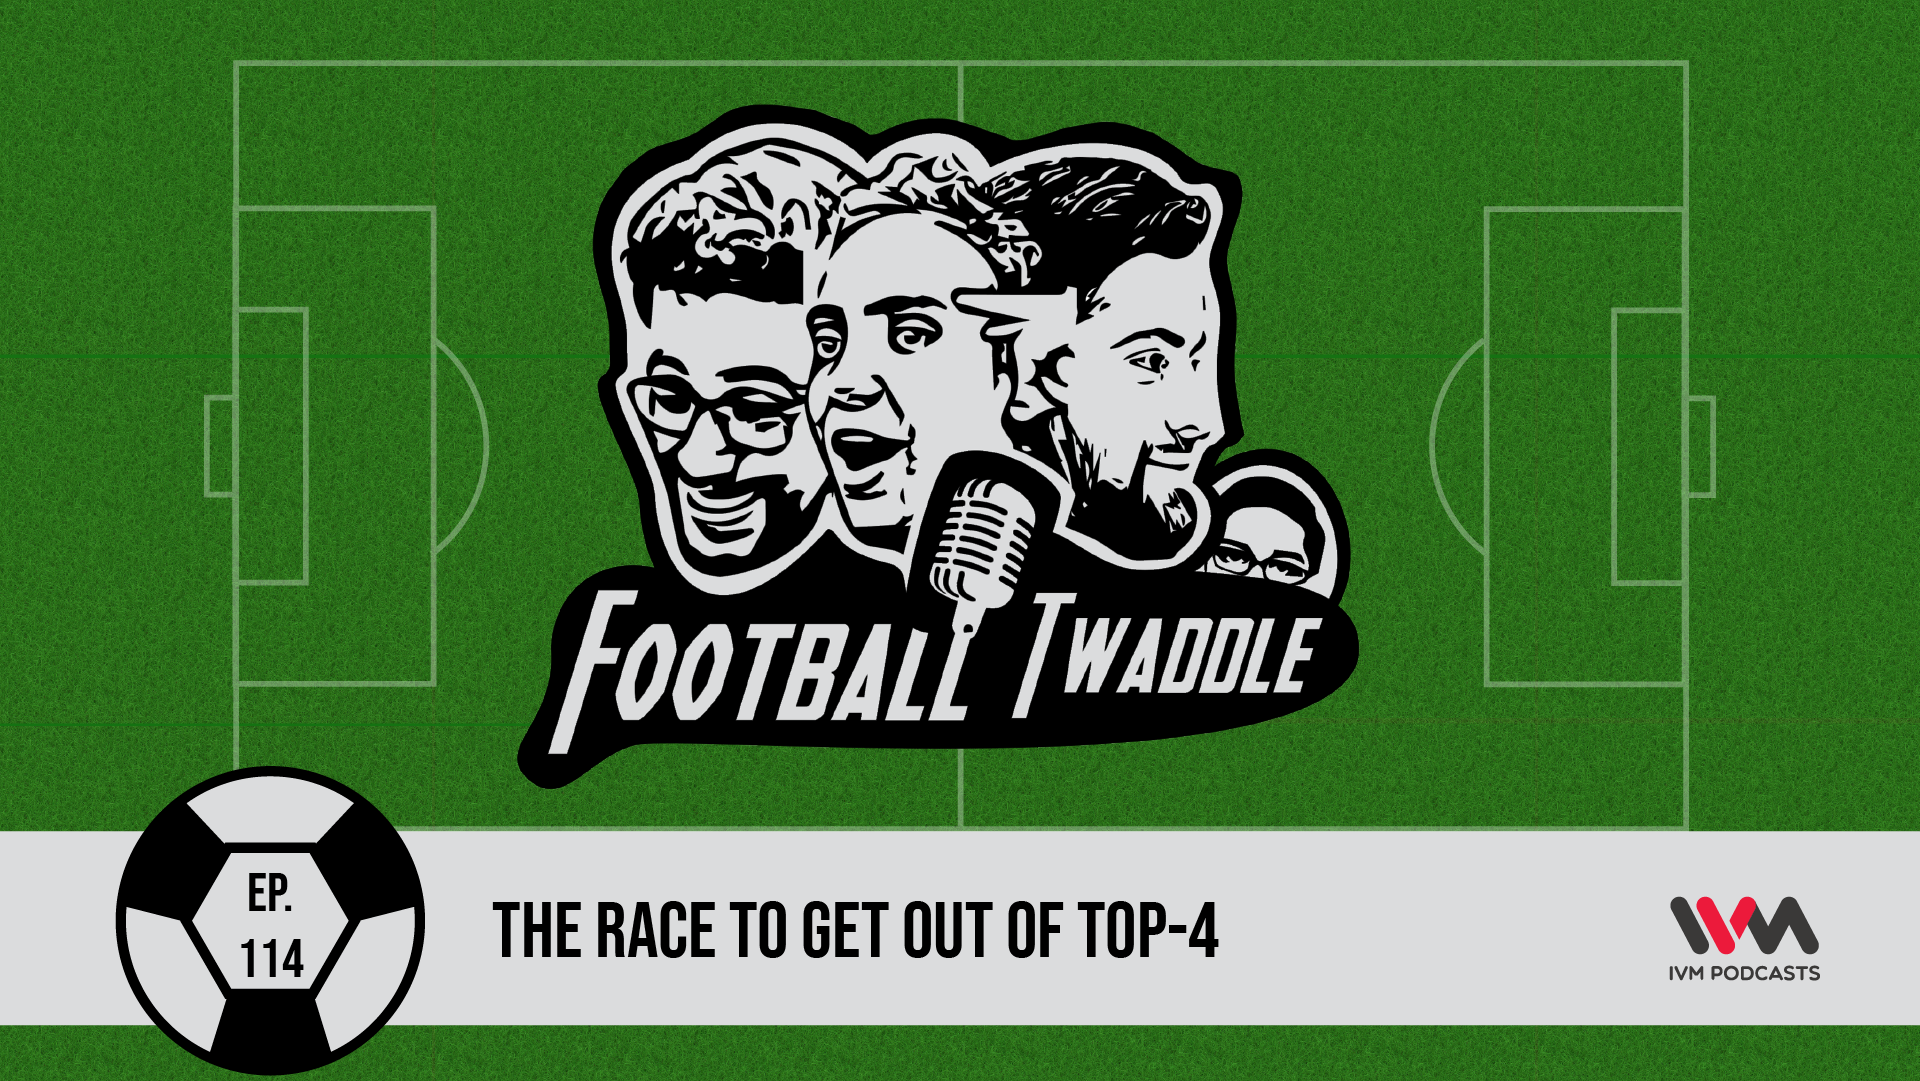 FootballTwaddleEpisode114.png